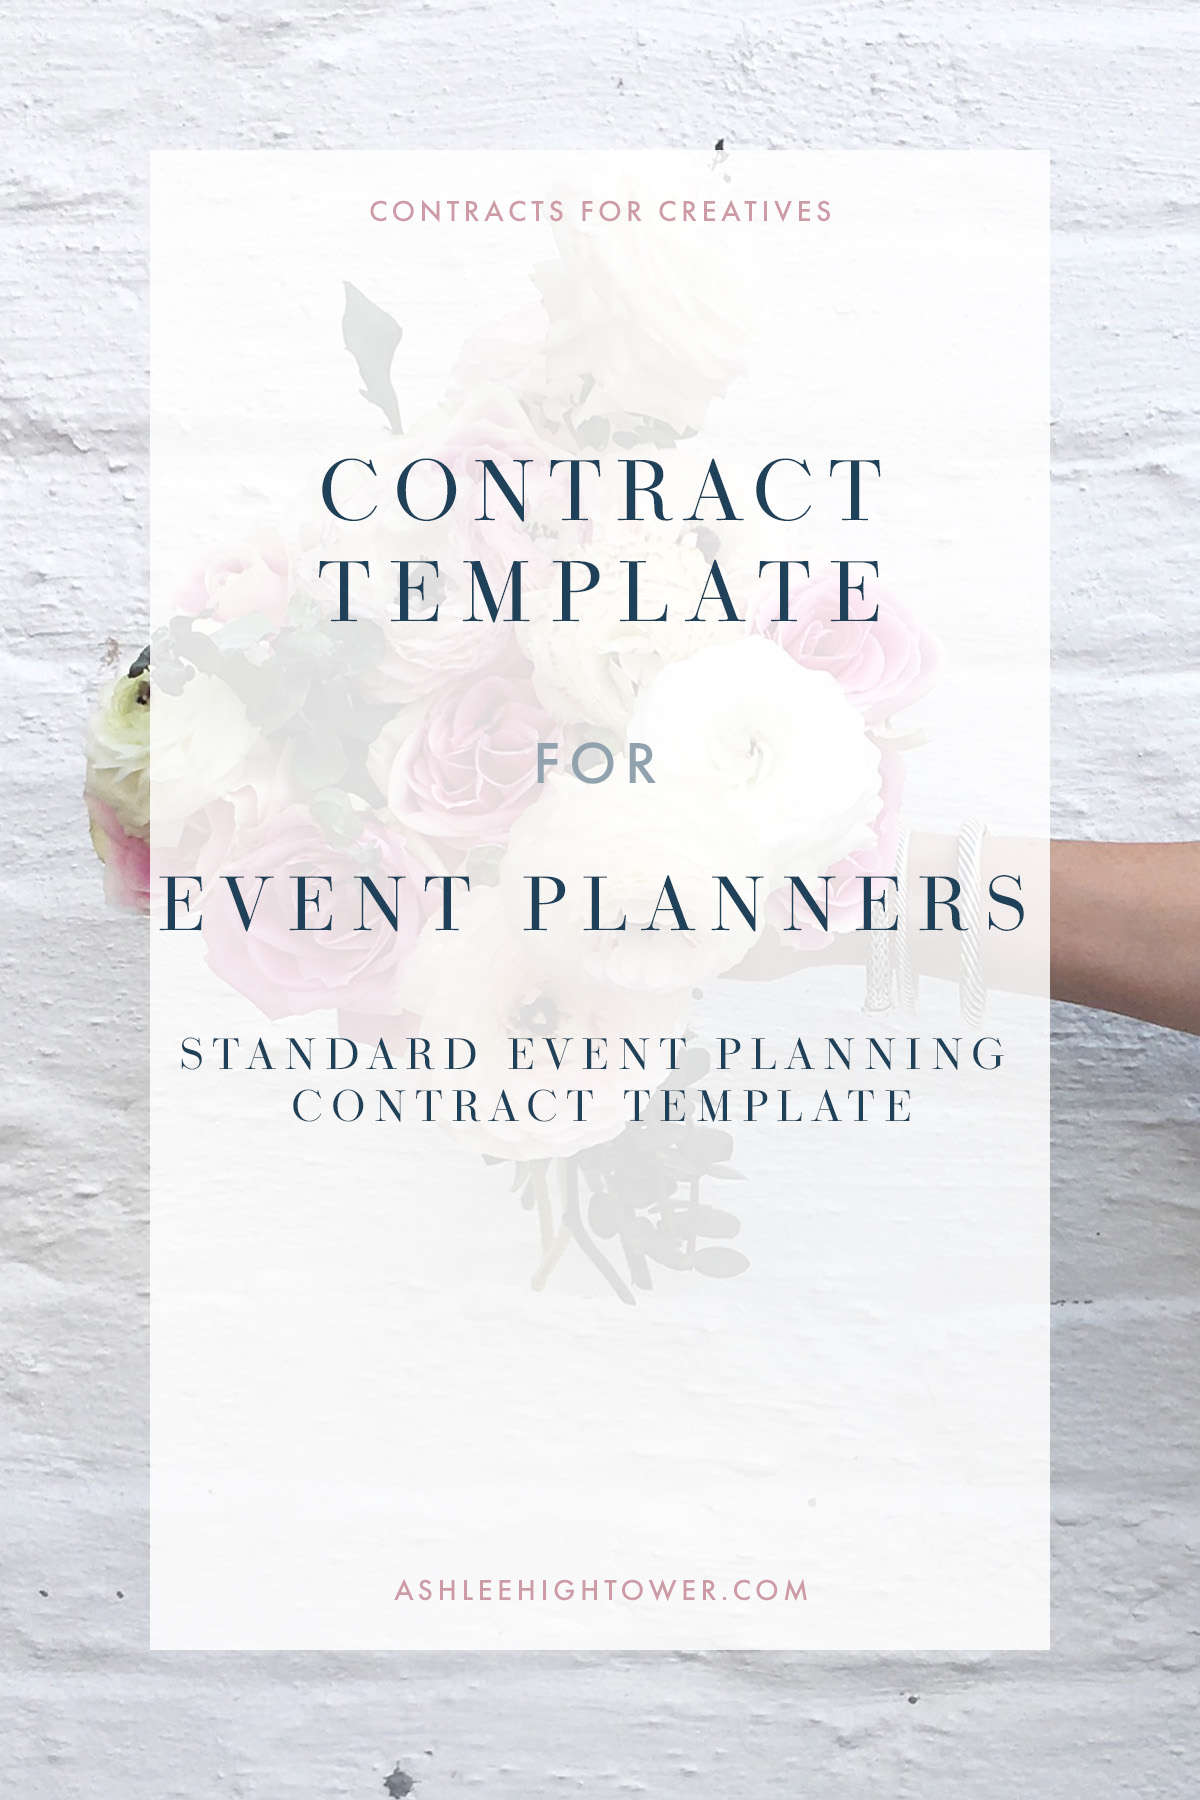 Event Planner Contract Template Contract For Creatives Ashlee